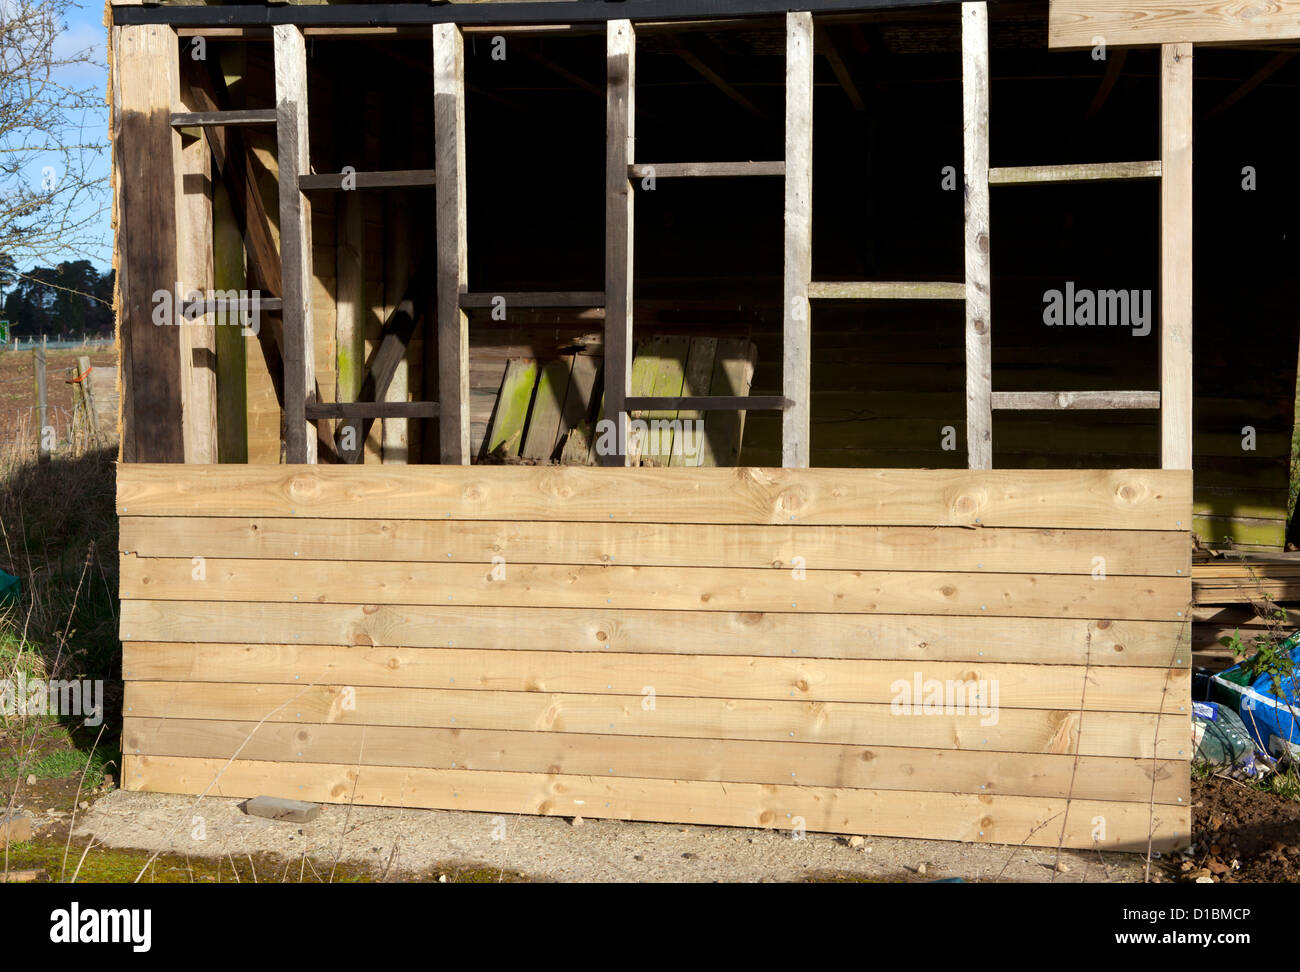 Diy Shed Stockfotos & Diy Shed Bilder - Alamy